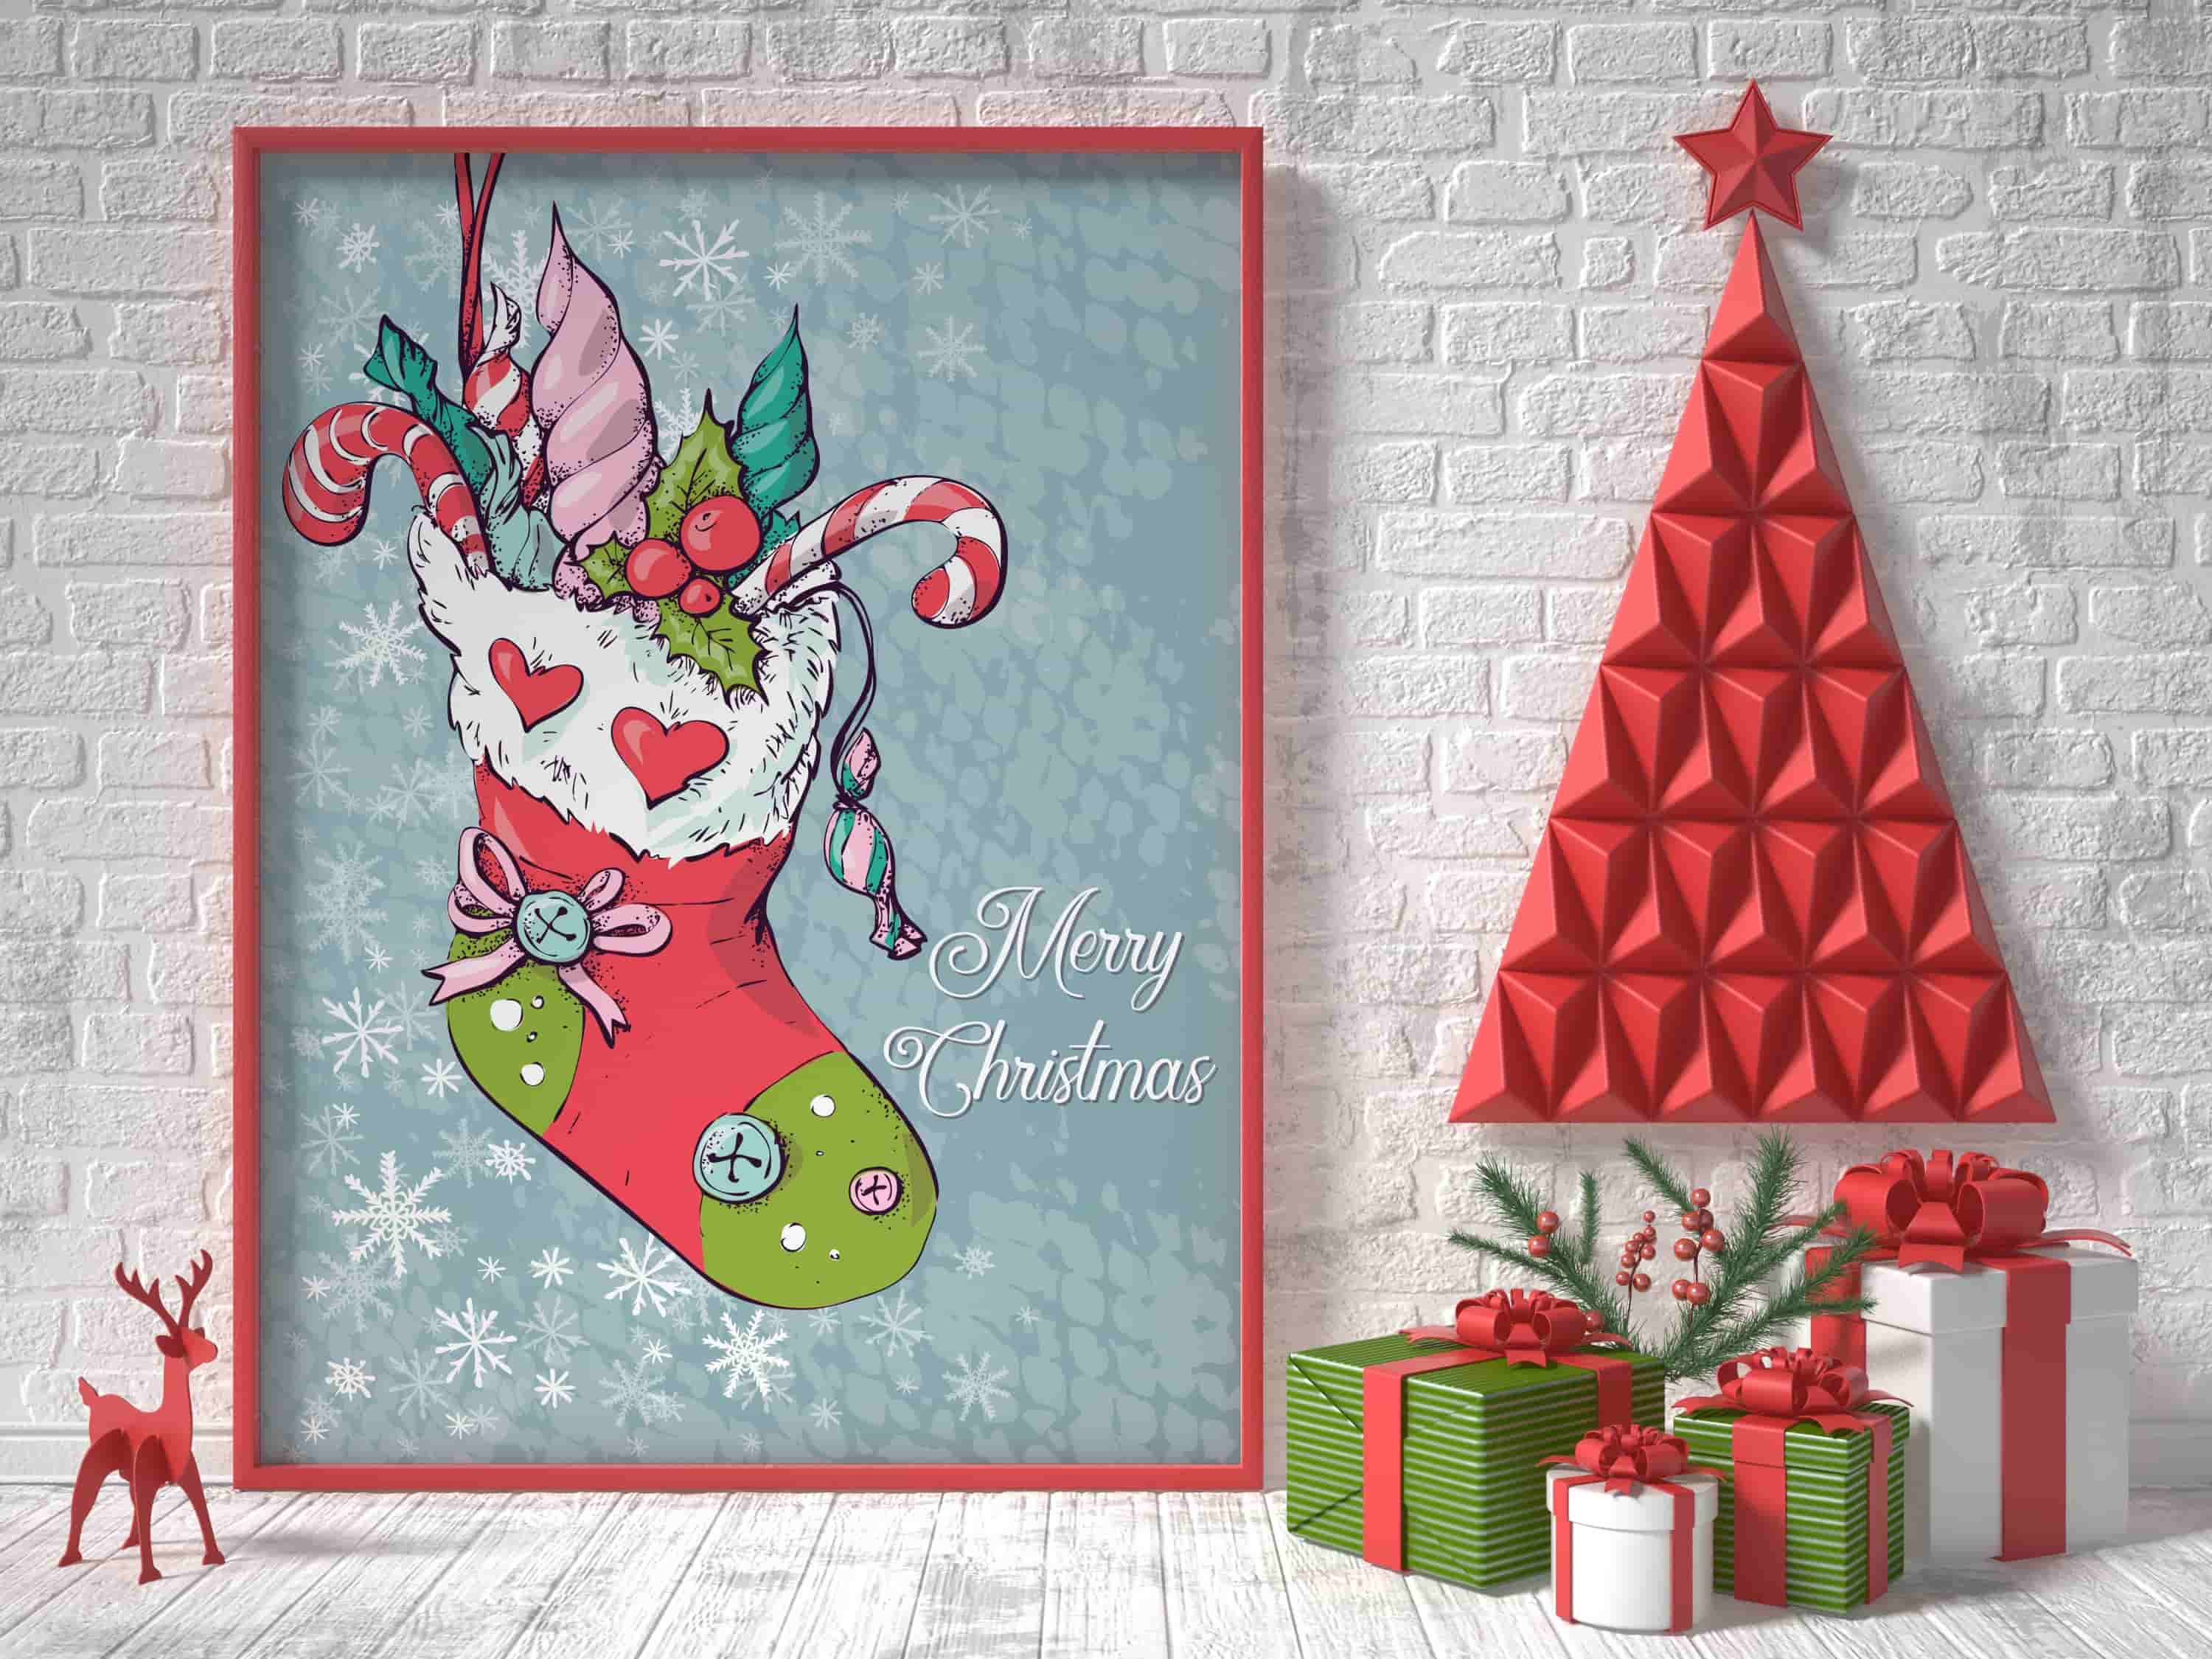 Merry Christmas Images: patterns, cards and items - 9 Image00001 min